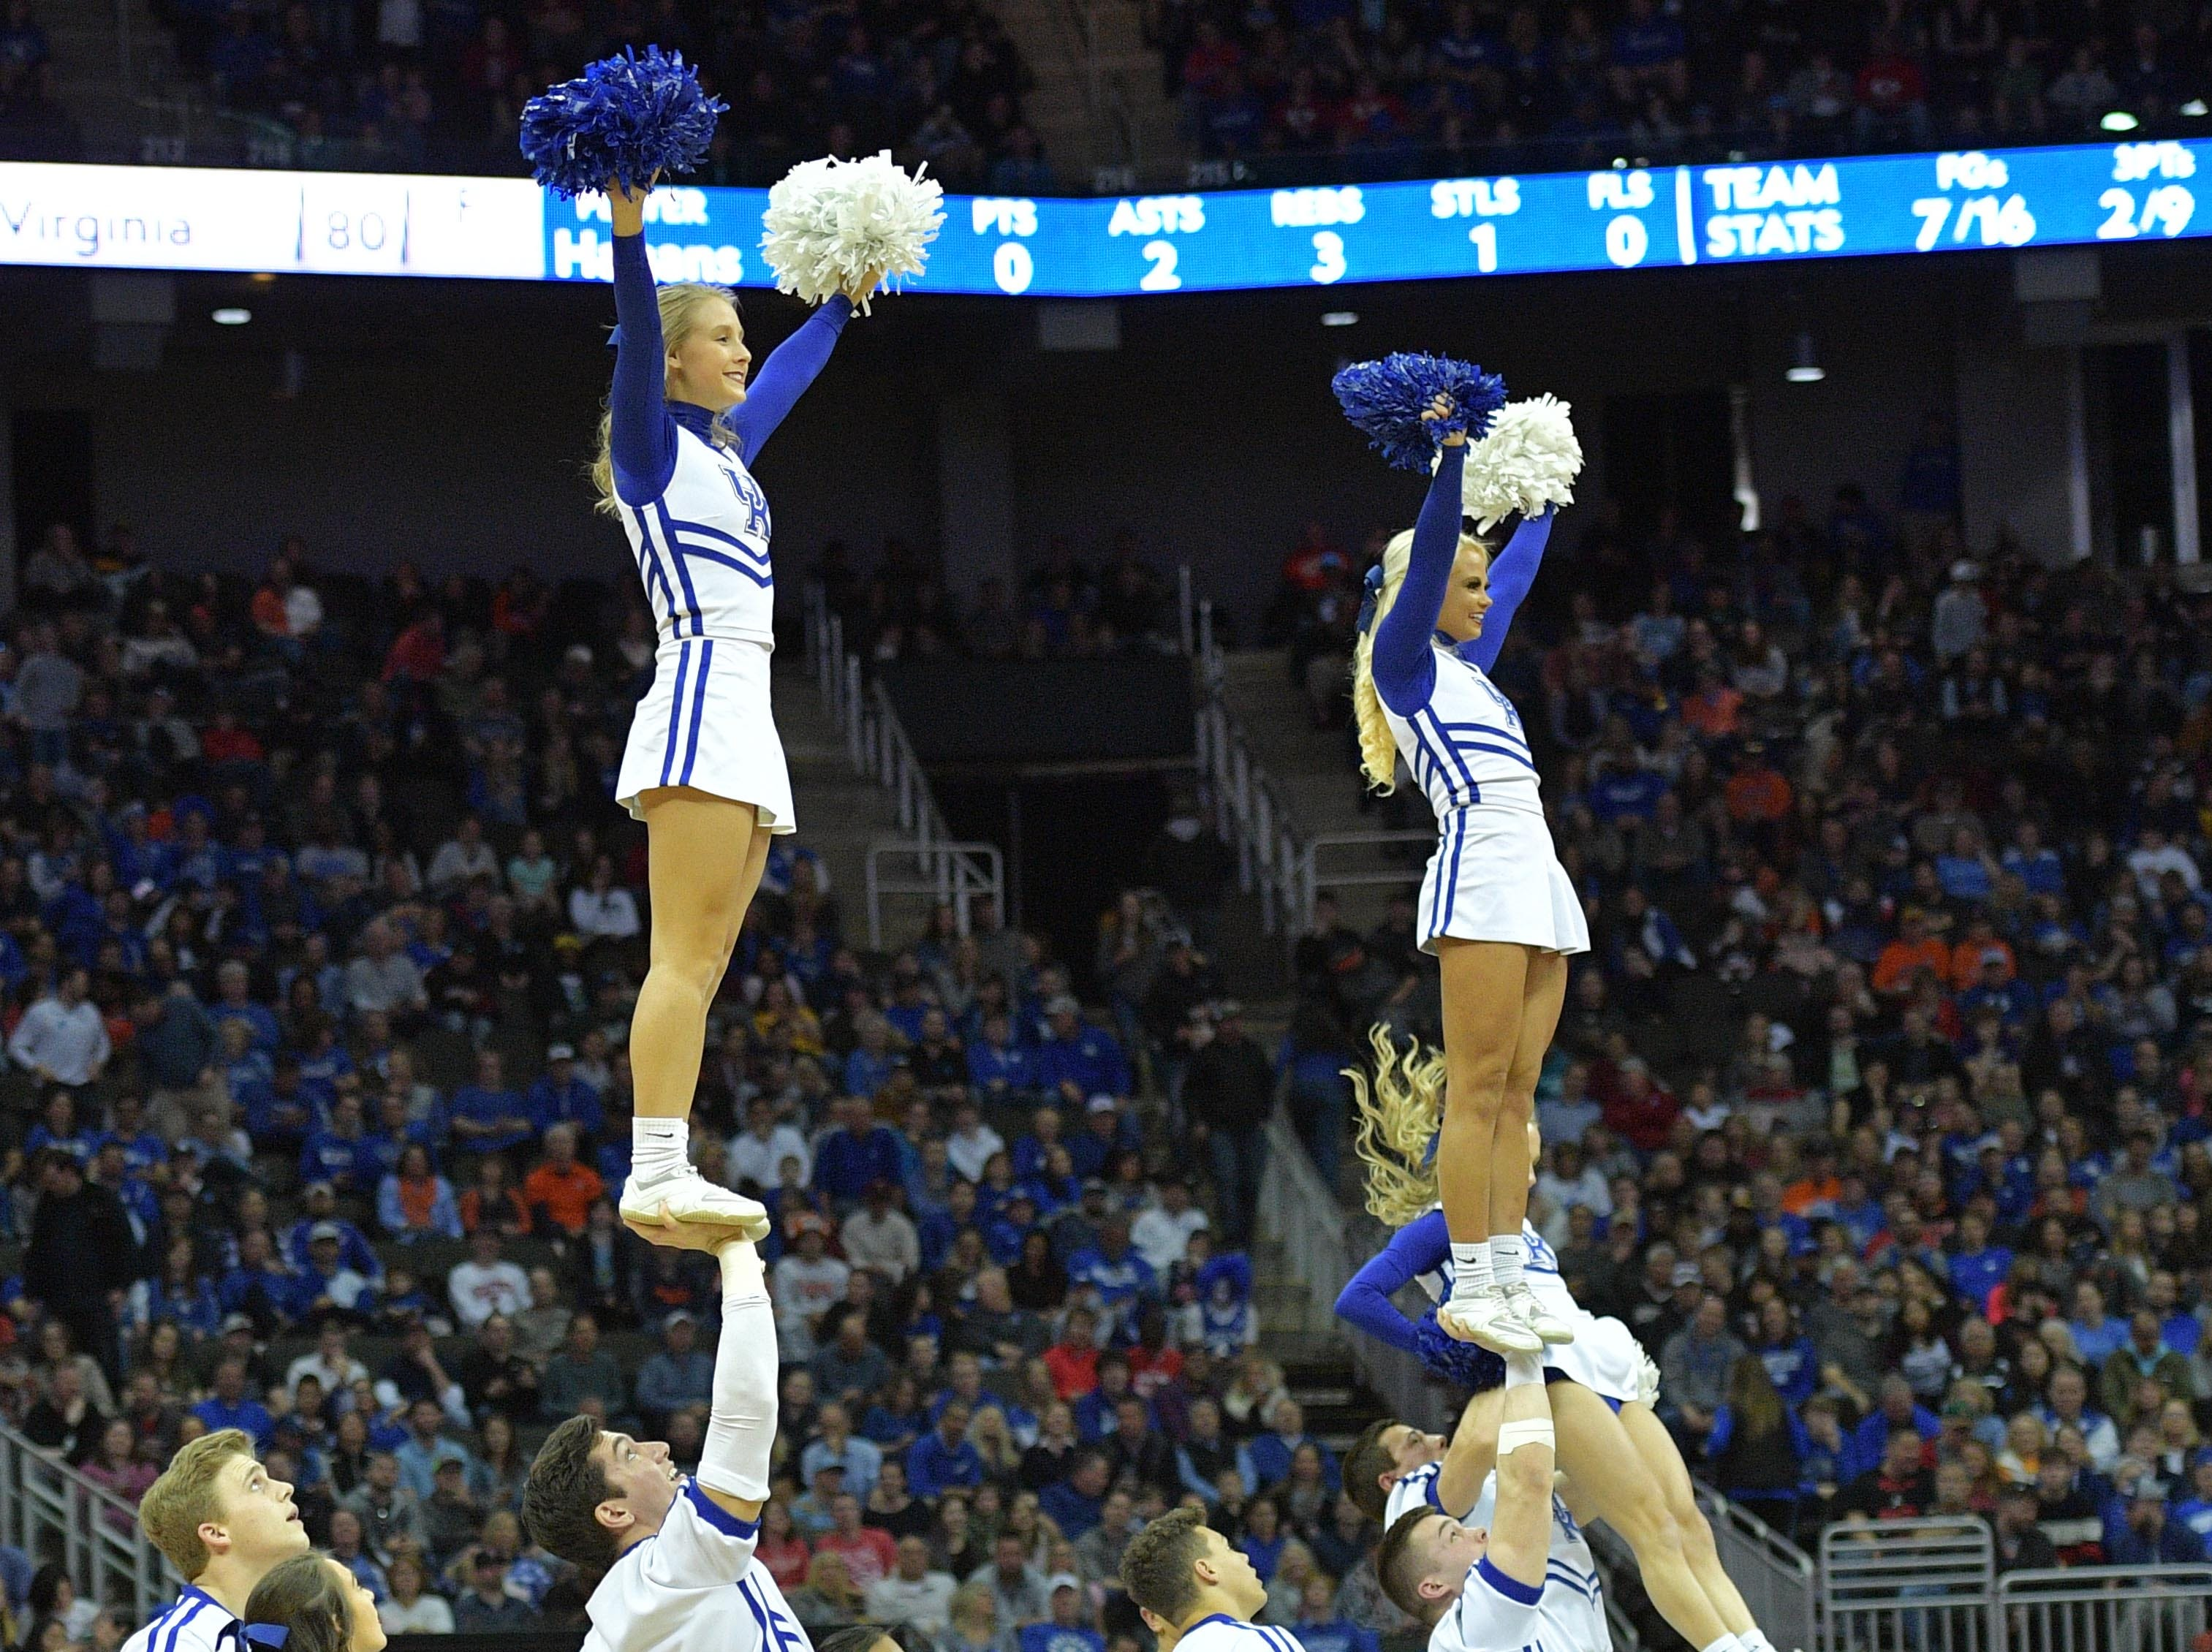 Mar 31, 2019; Kansas City, MO, United States; Kentucky Wildcats cheerleaders perform against the Auburn Tigers during the first half in the championship game of the midwest regional of the 2019 NCAA Tournament at Sprint Center. Mandatory Credit: Denny Medley-USA TODAY Sports